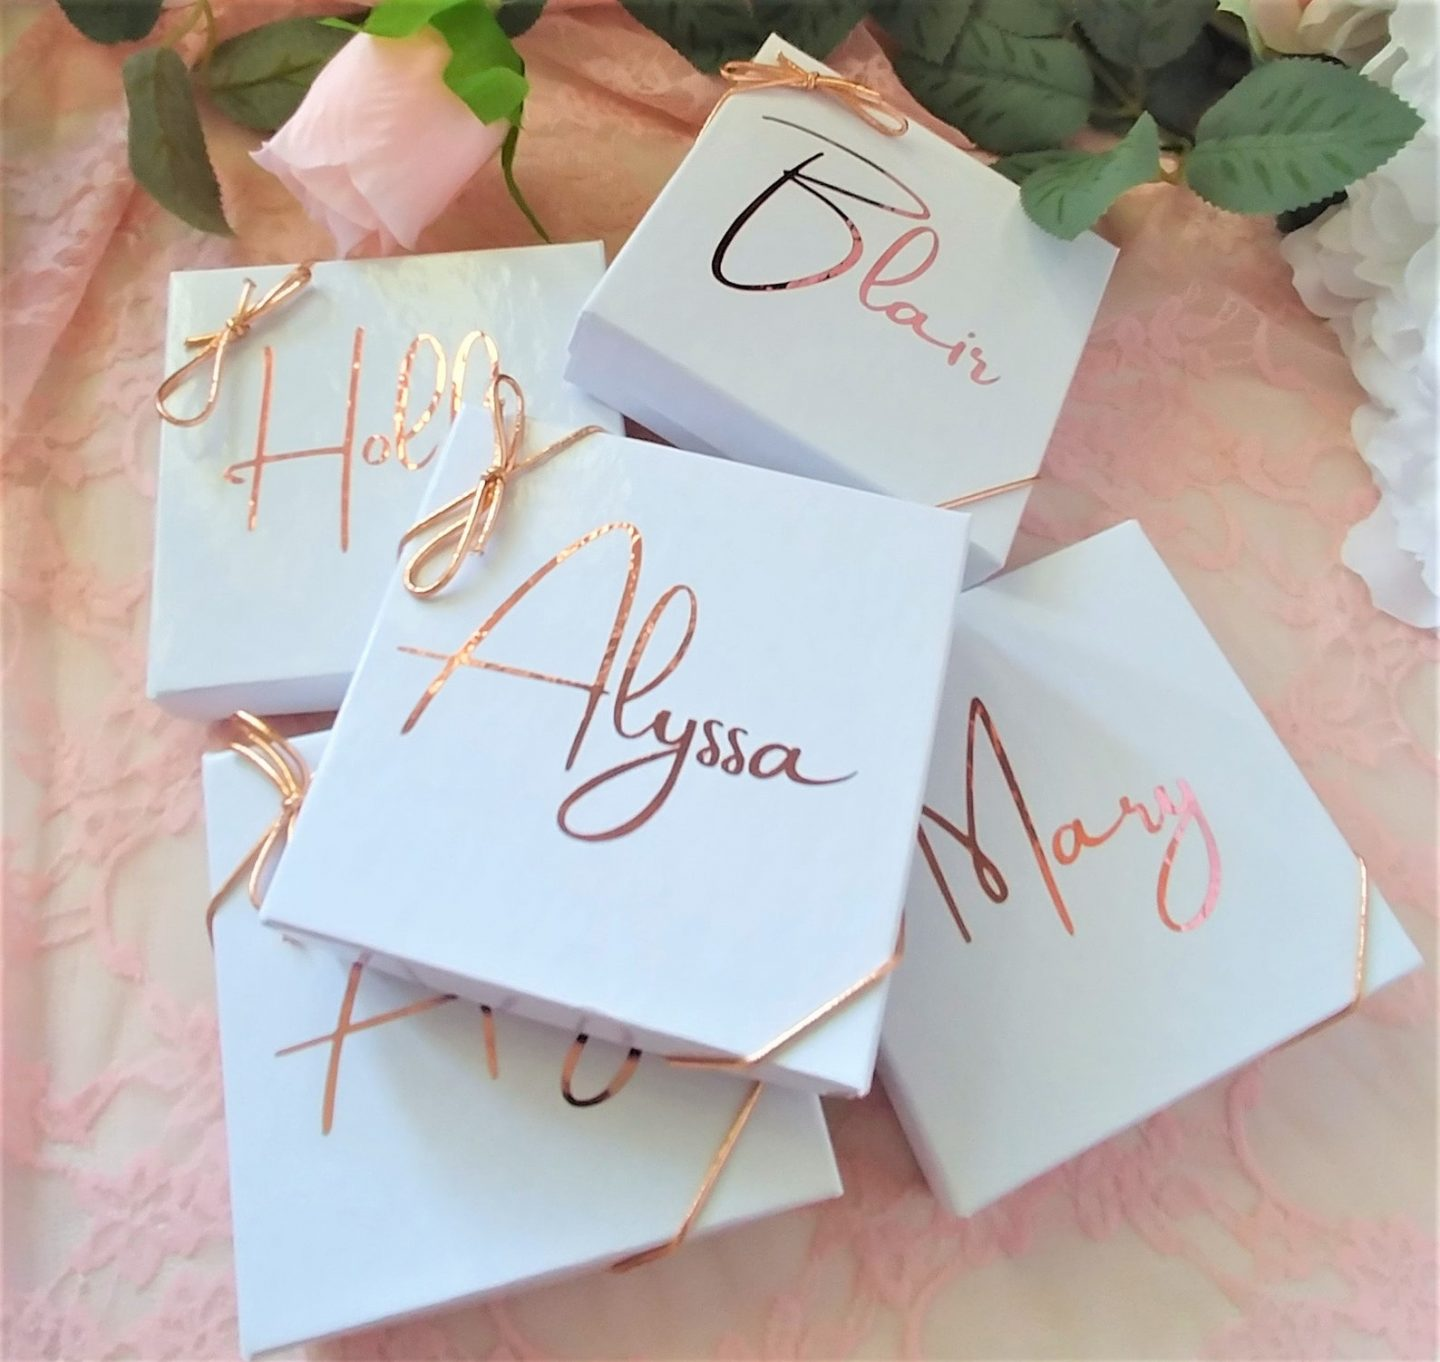 Cute white and rose gold personalized jewelry gift boxes